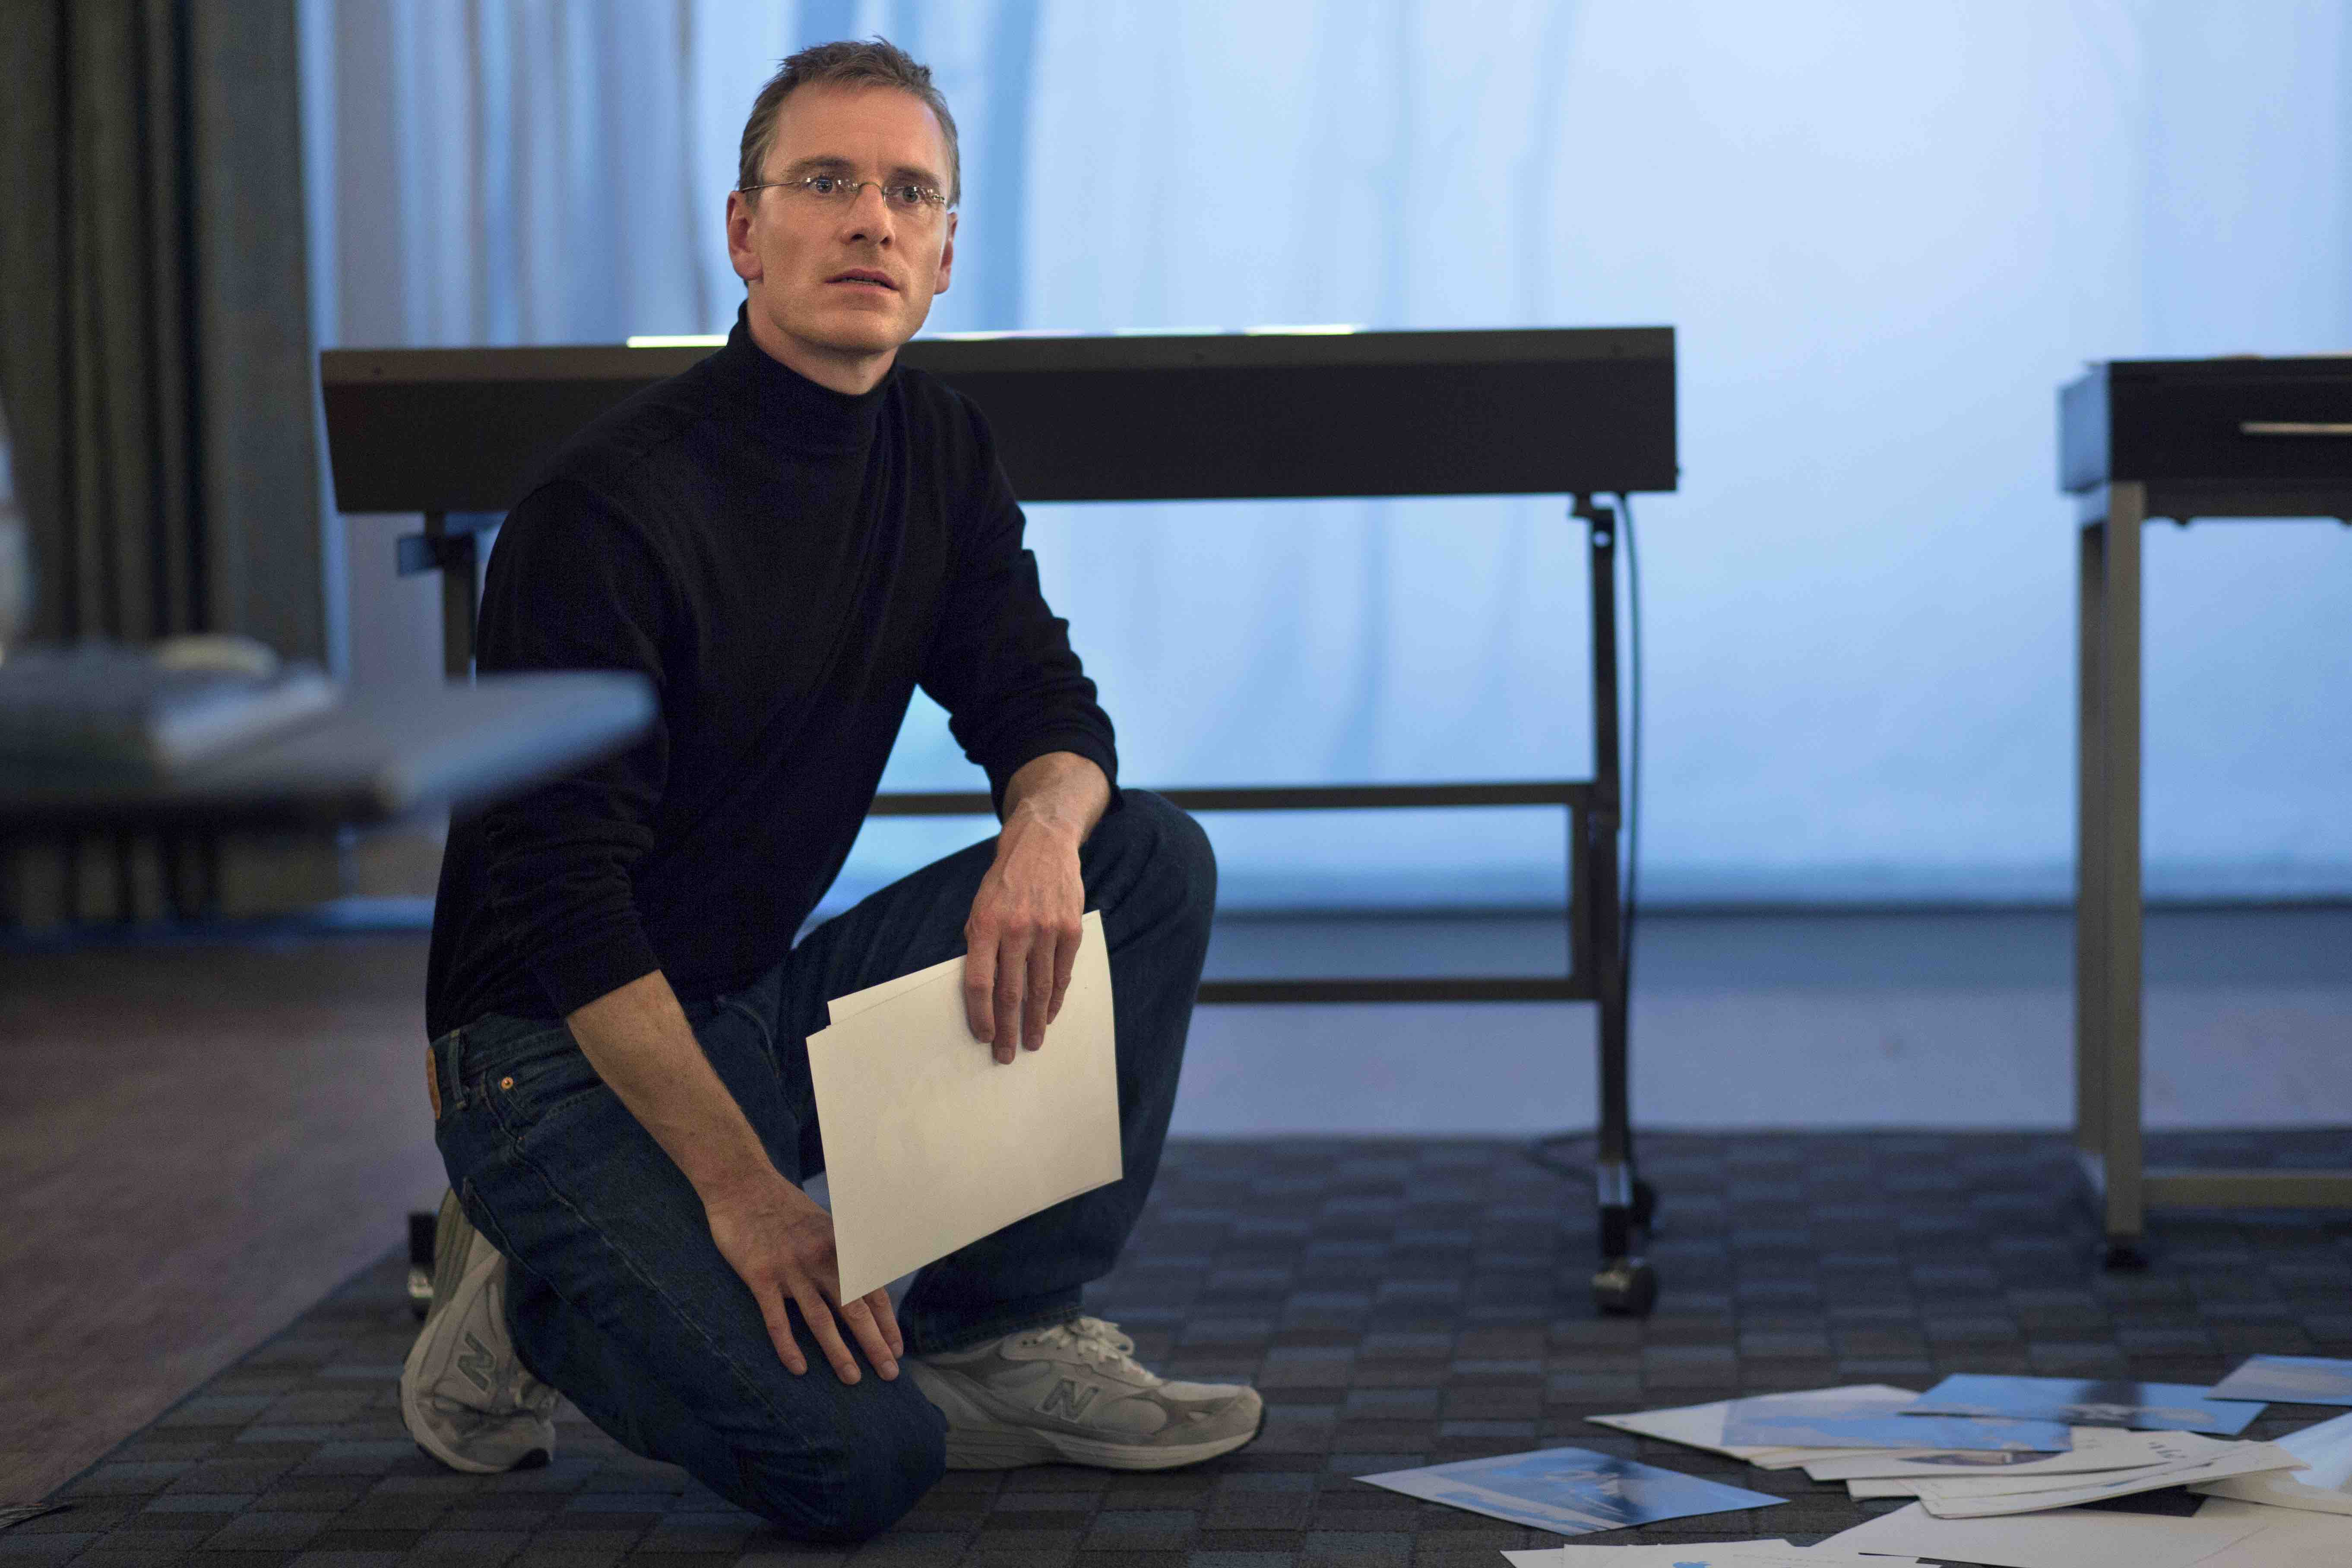 MICHAEL FASSBENDER portrays the pioneering founder of Apple in ?Steve Jobs?, directed by Academy Award? winner Danny Boyle and written by Academy Award? winner Aaron Sorkin.  Set backstage in the minutes before three iconic product launches spanning Jobs? career?beginning with the Macintosh in 1984, and ending with the unveiling of the iMac in 1998?the film takes us behind the scenes of the digital revolution to paint an intimate portrait of the brilliant man at its epicenter.